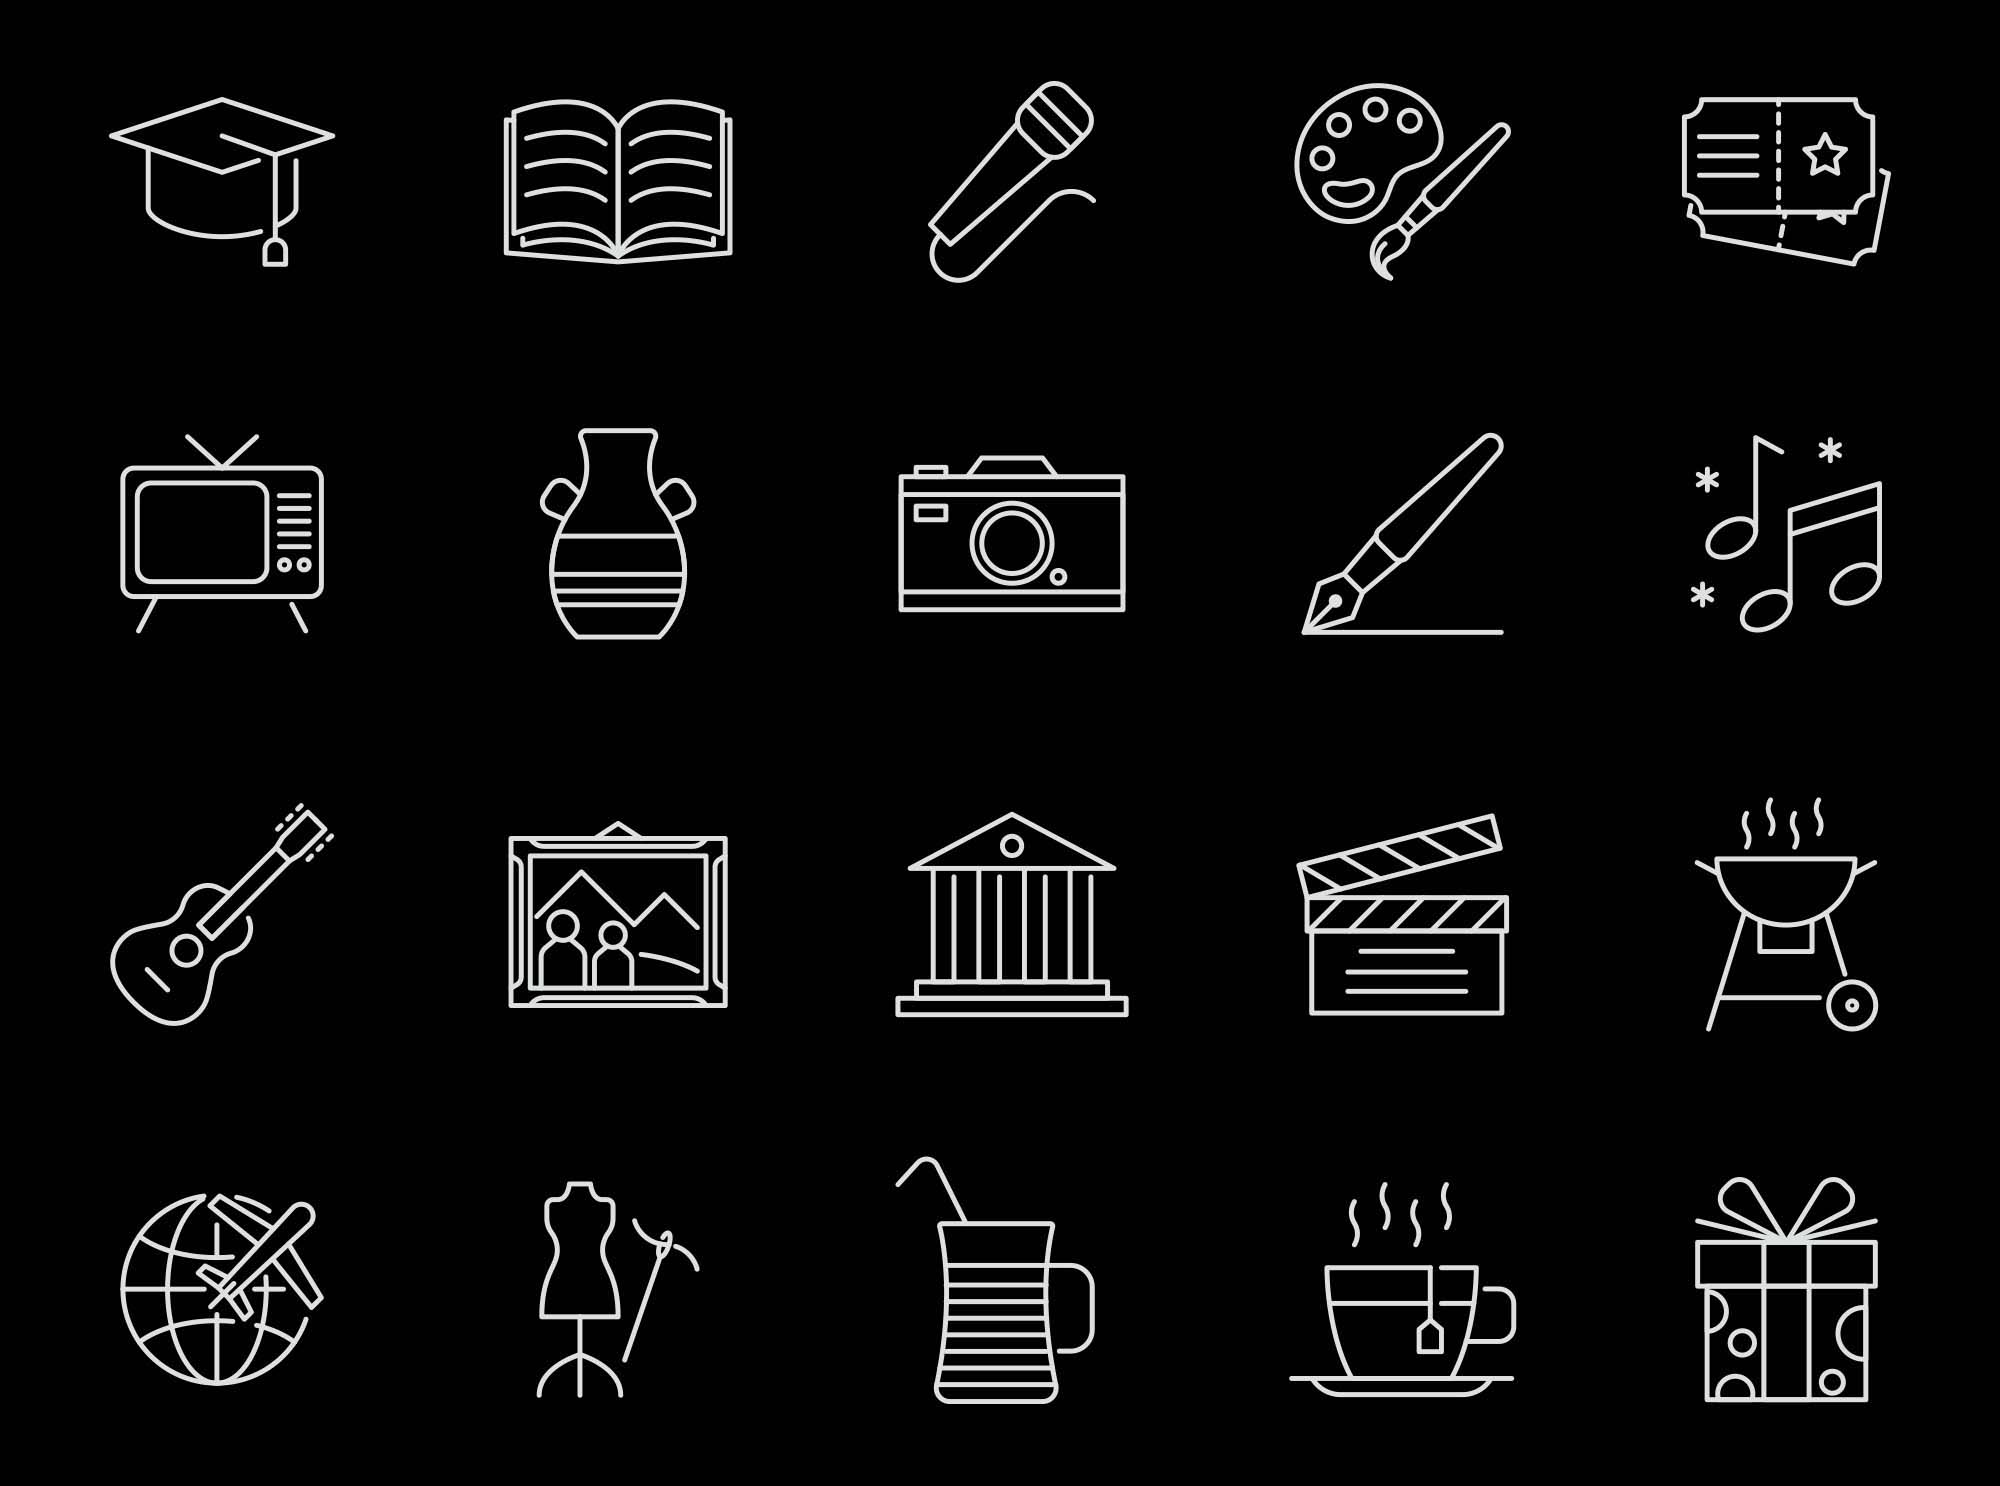 Culture Vector Icons 2